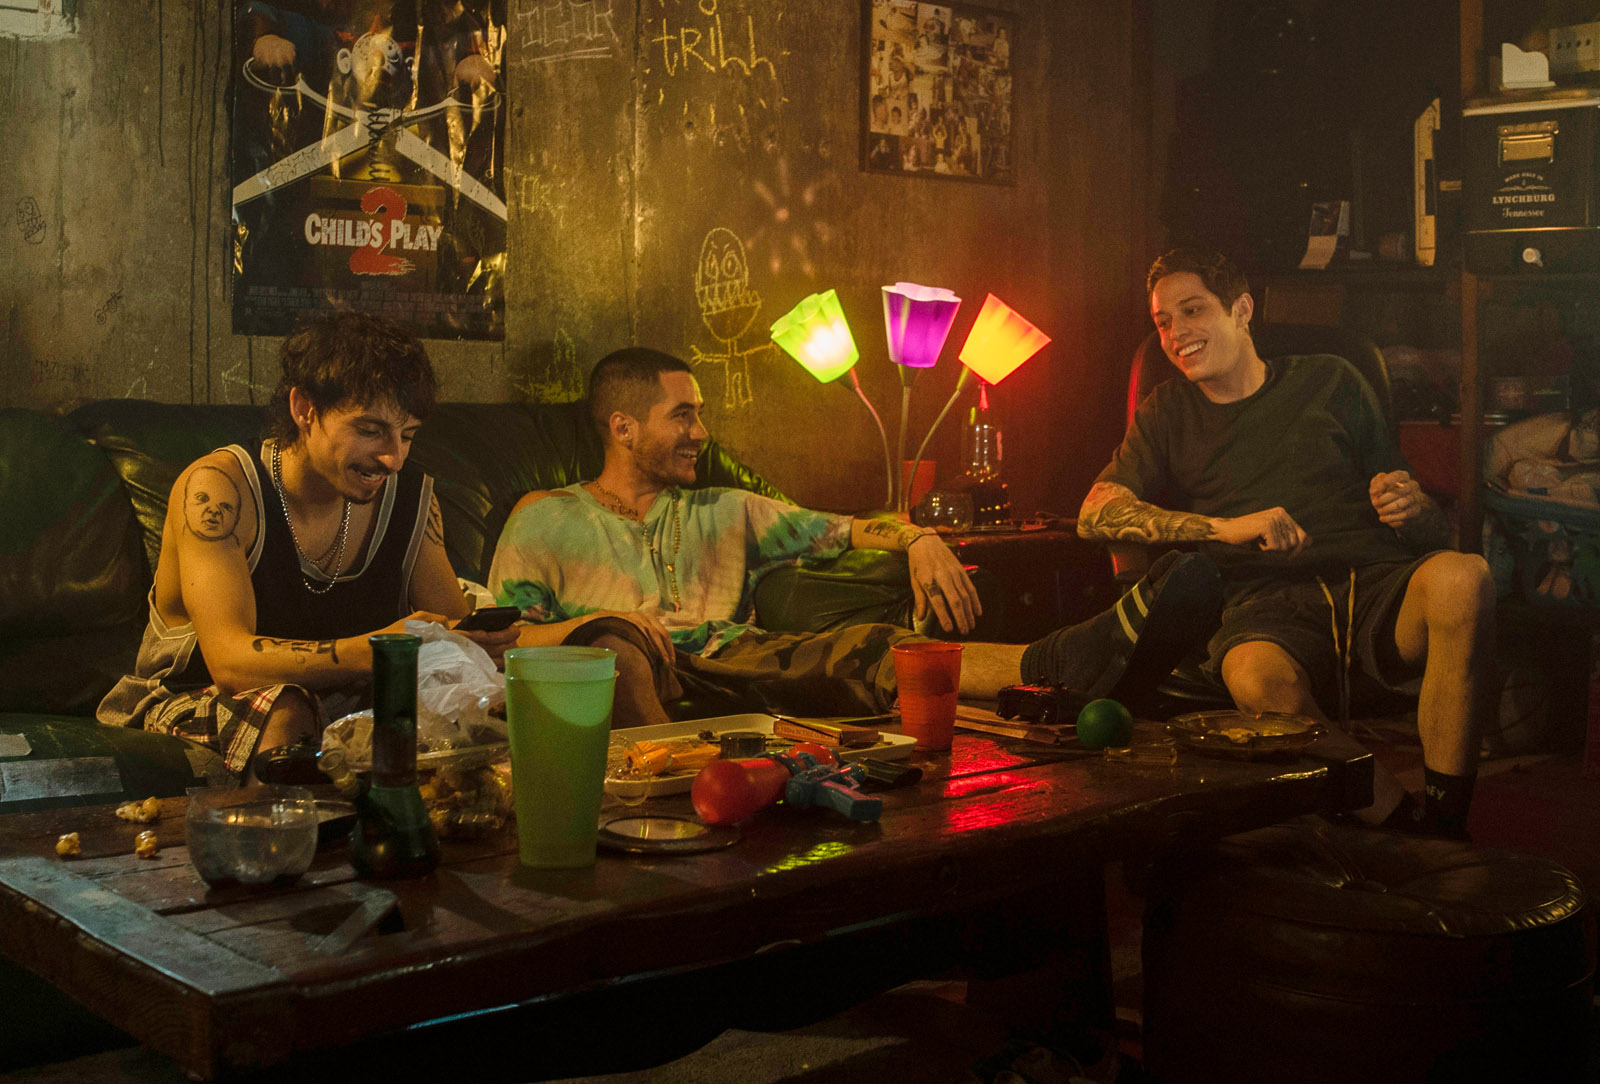 (from left) Igor (Moises Arias), Oscar (Ricky Velez) and Scott Carlin (Pete Davidson) in The King of Staten Island, directed by Judd Apatow.